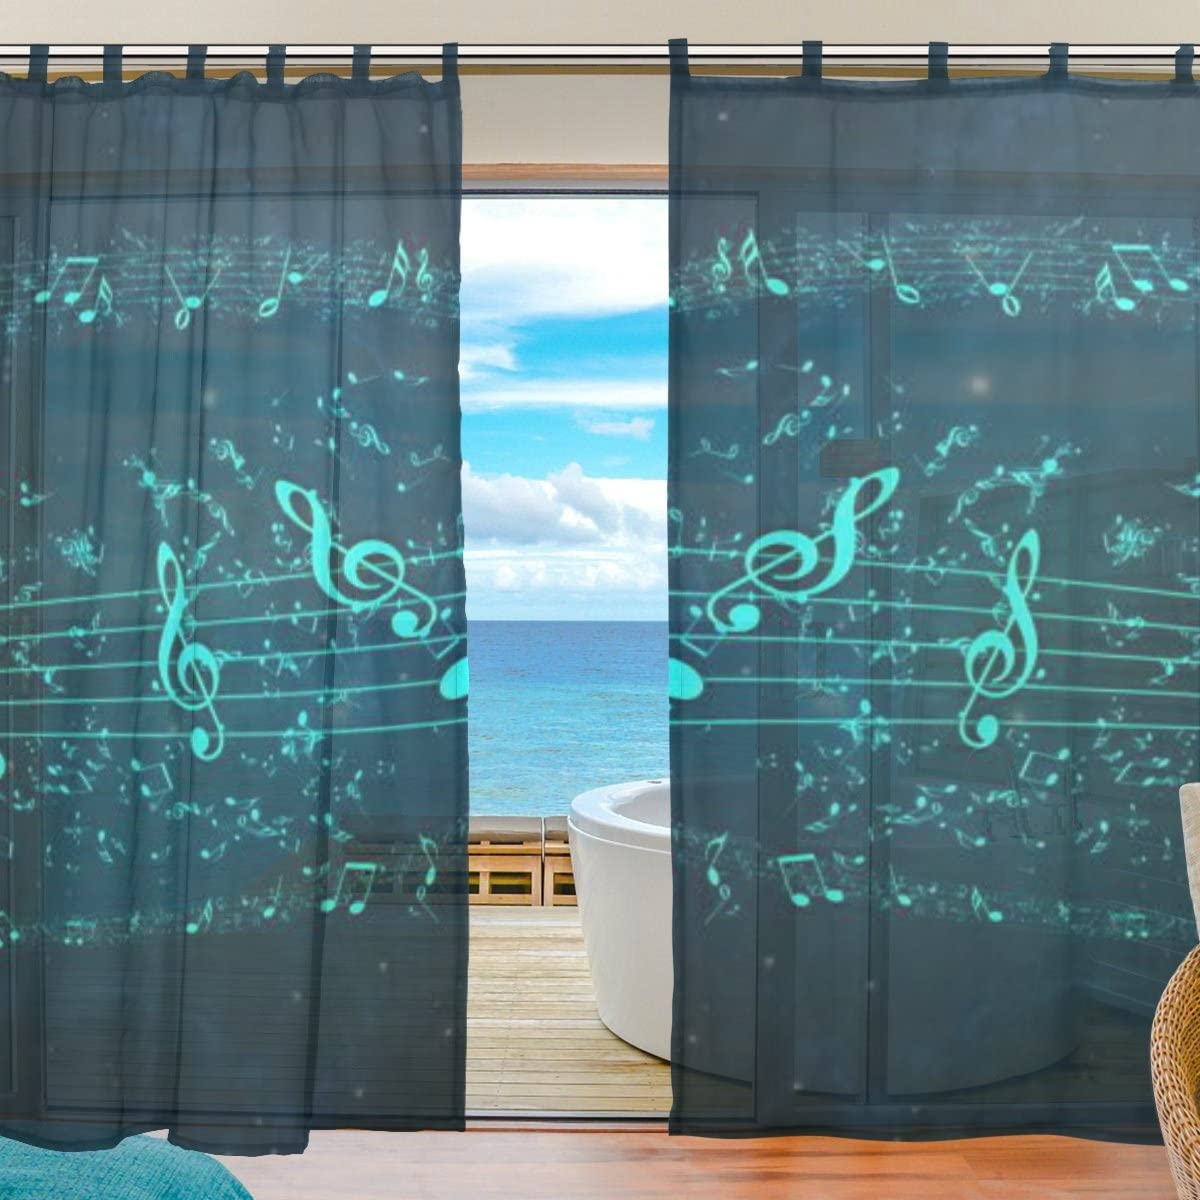 JSTEL Bedroom Decor Living Room Decorations Colorful Music E2 Pattern Print Tulle Polyester Door Window Gauze Sheer Curtain Drape Two Panels Set 55x78 inch,Set of 2